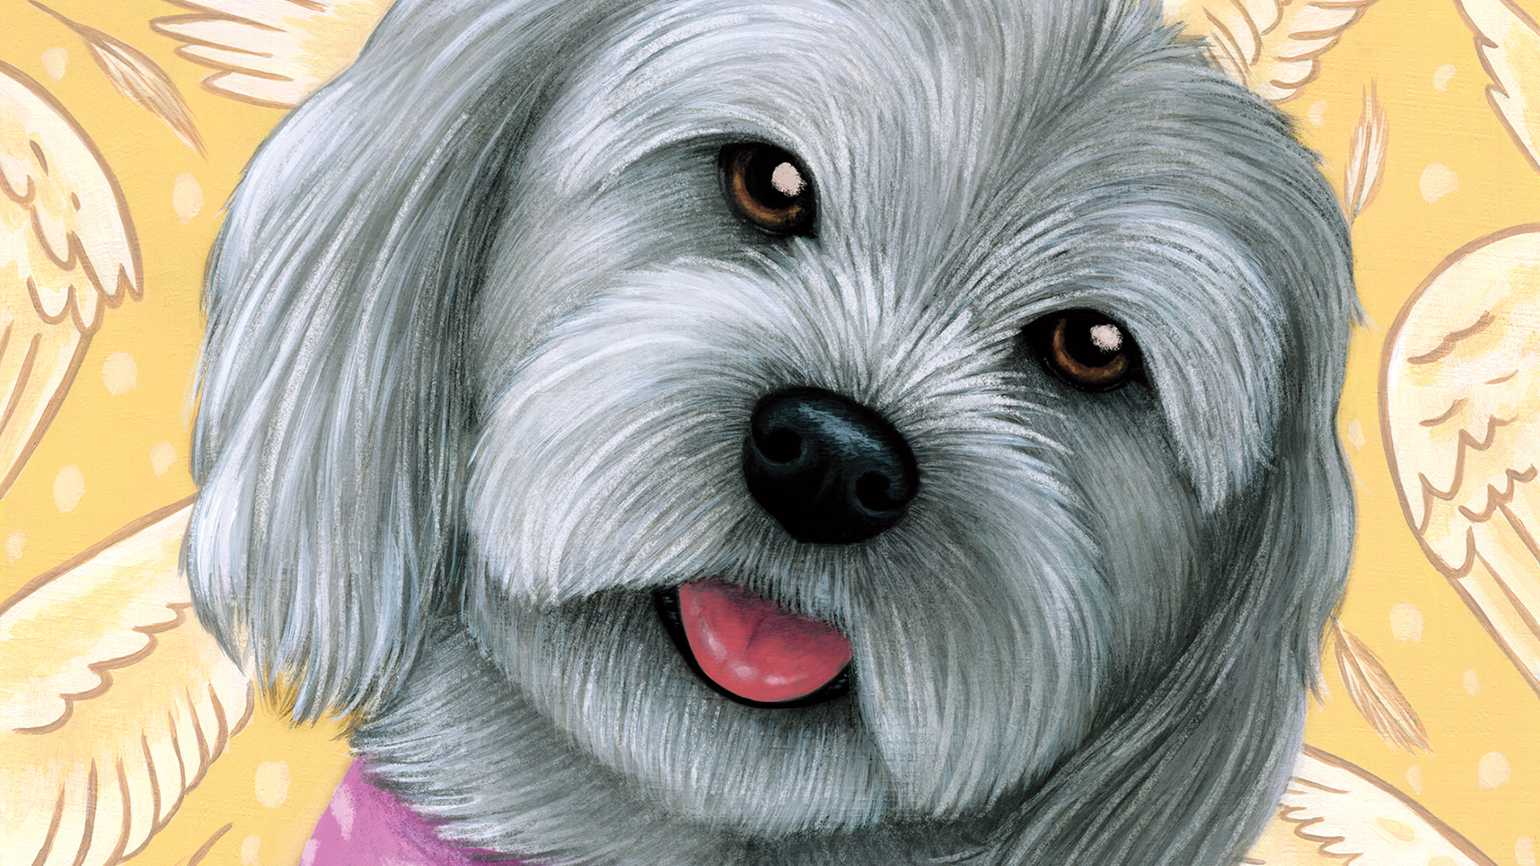 An artist's rendering of a friendly Havenese dog; Illustration by Kayla Reilly